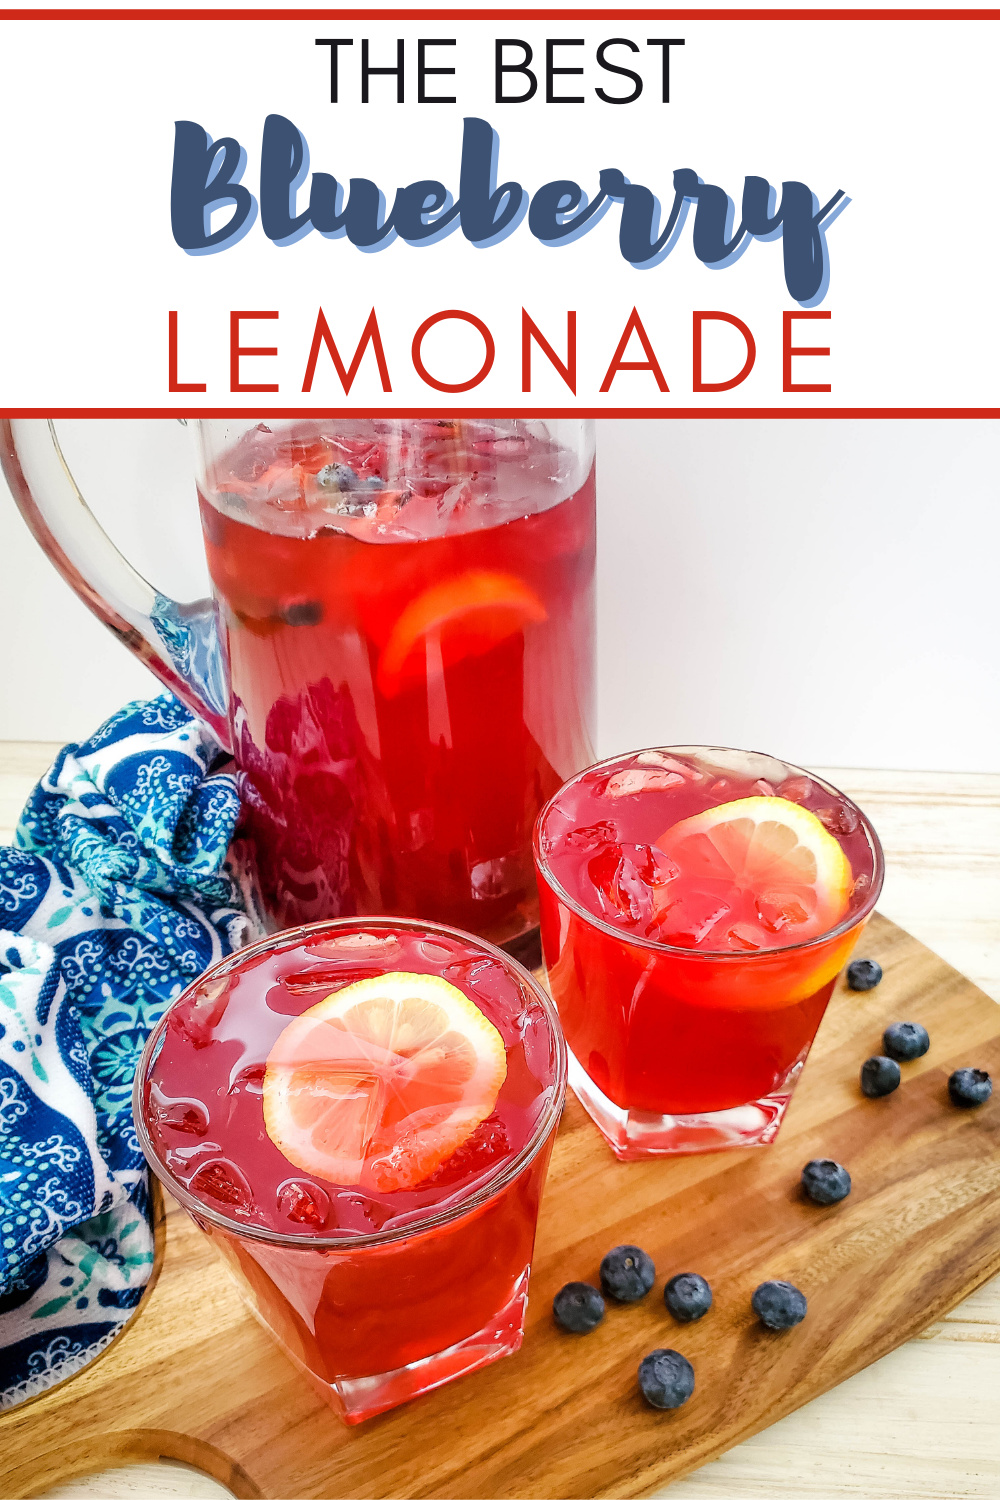 Homemade blueberry lemonade served in a pitcher with two poured glasses garnished with a lemon slice and blueberries